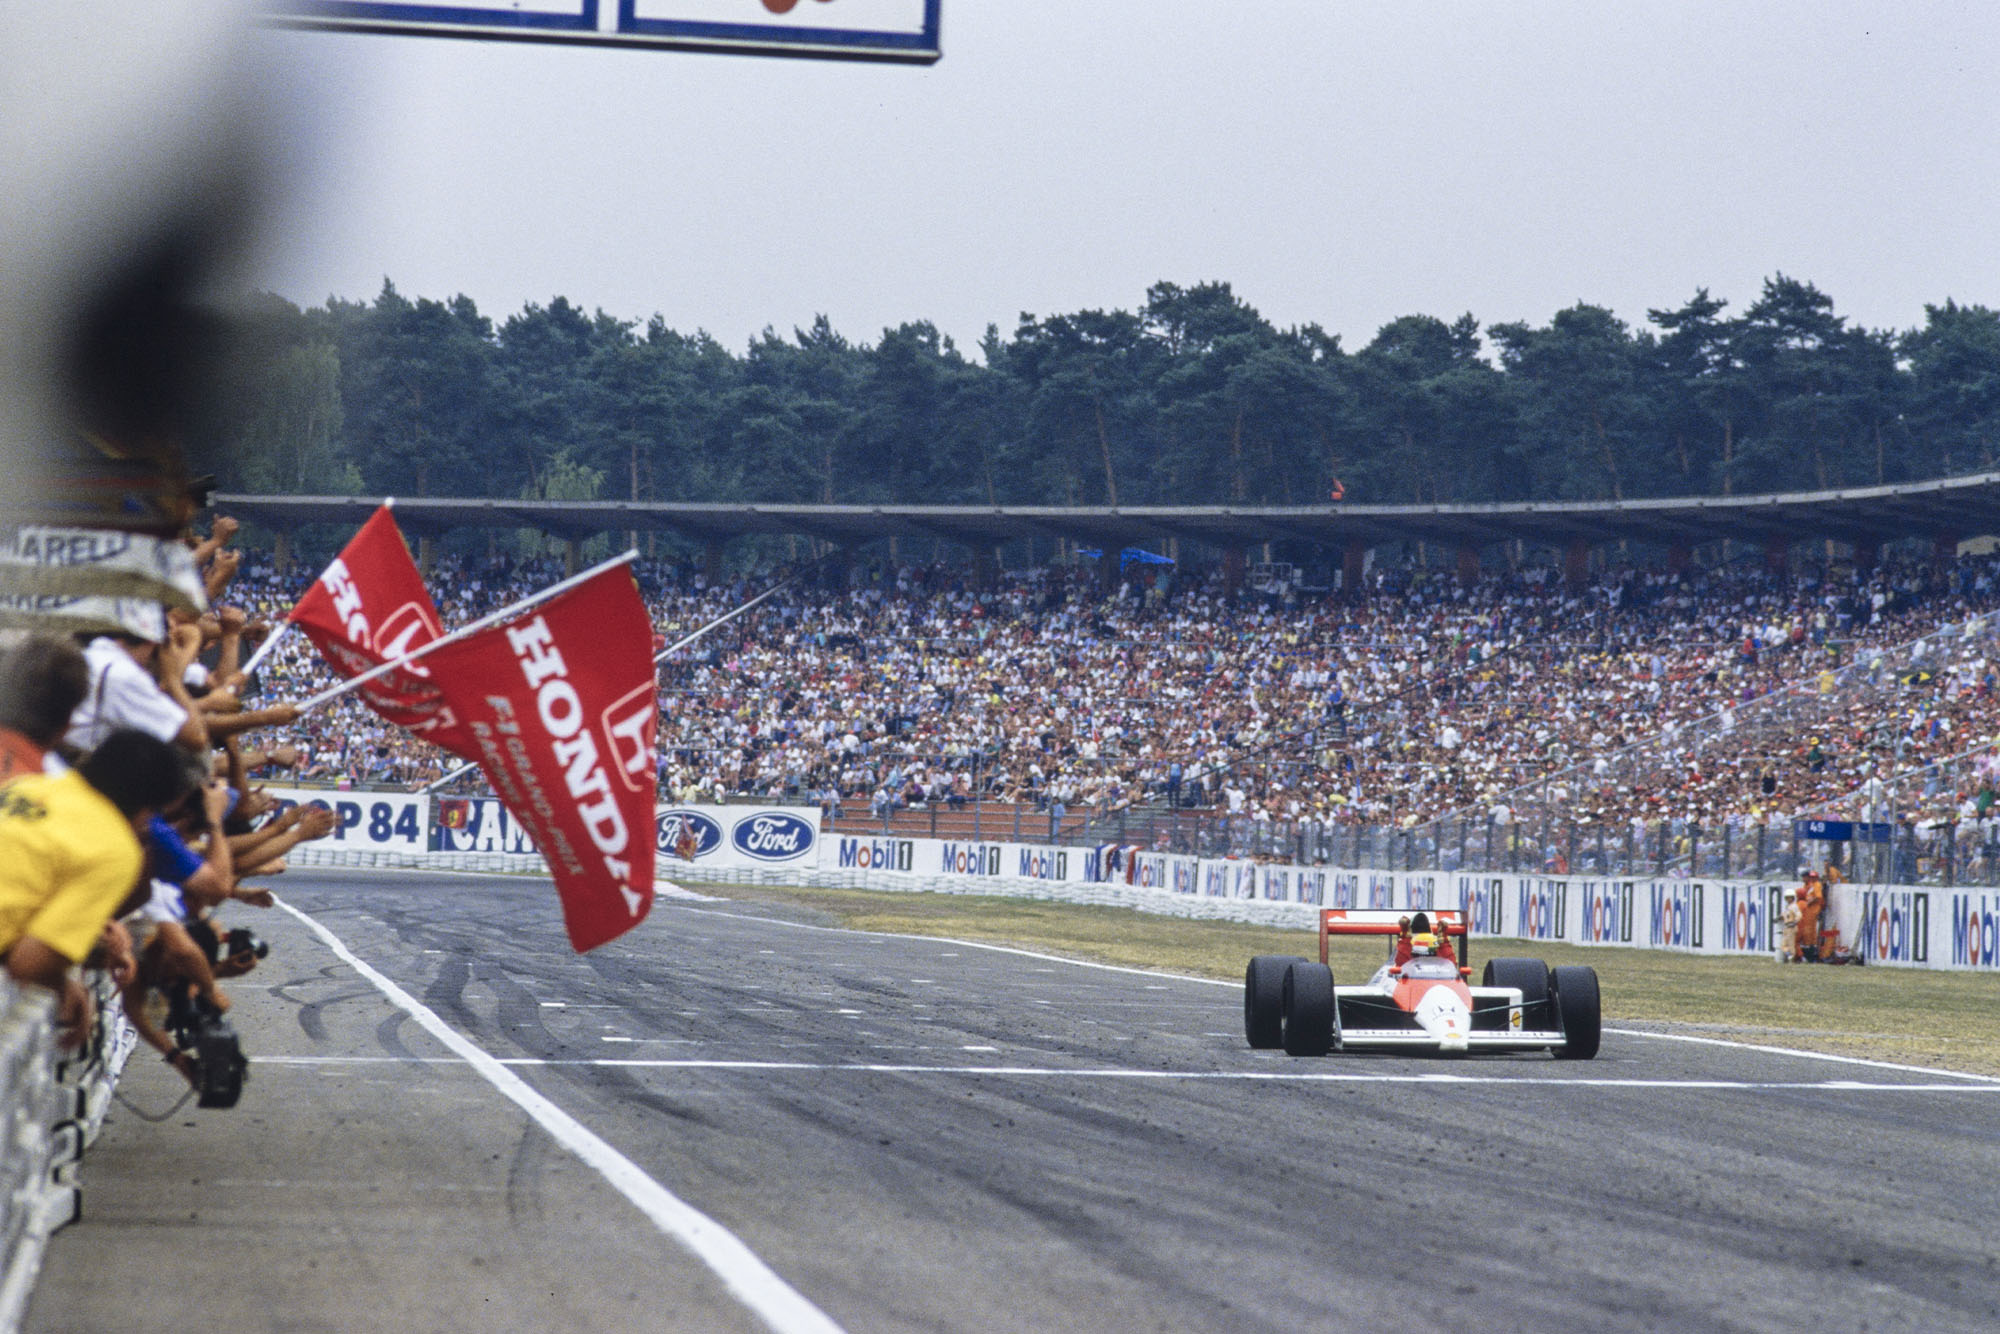 1989 GER GP finish